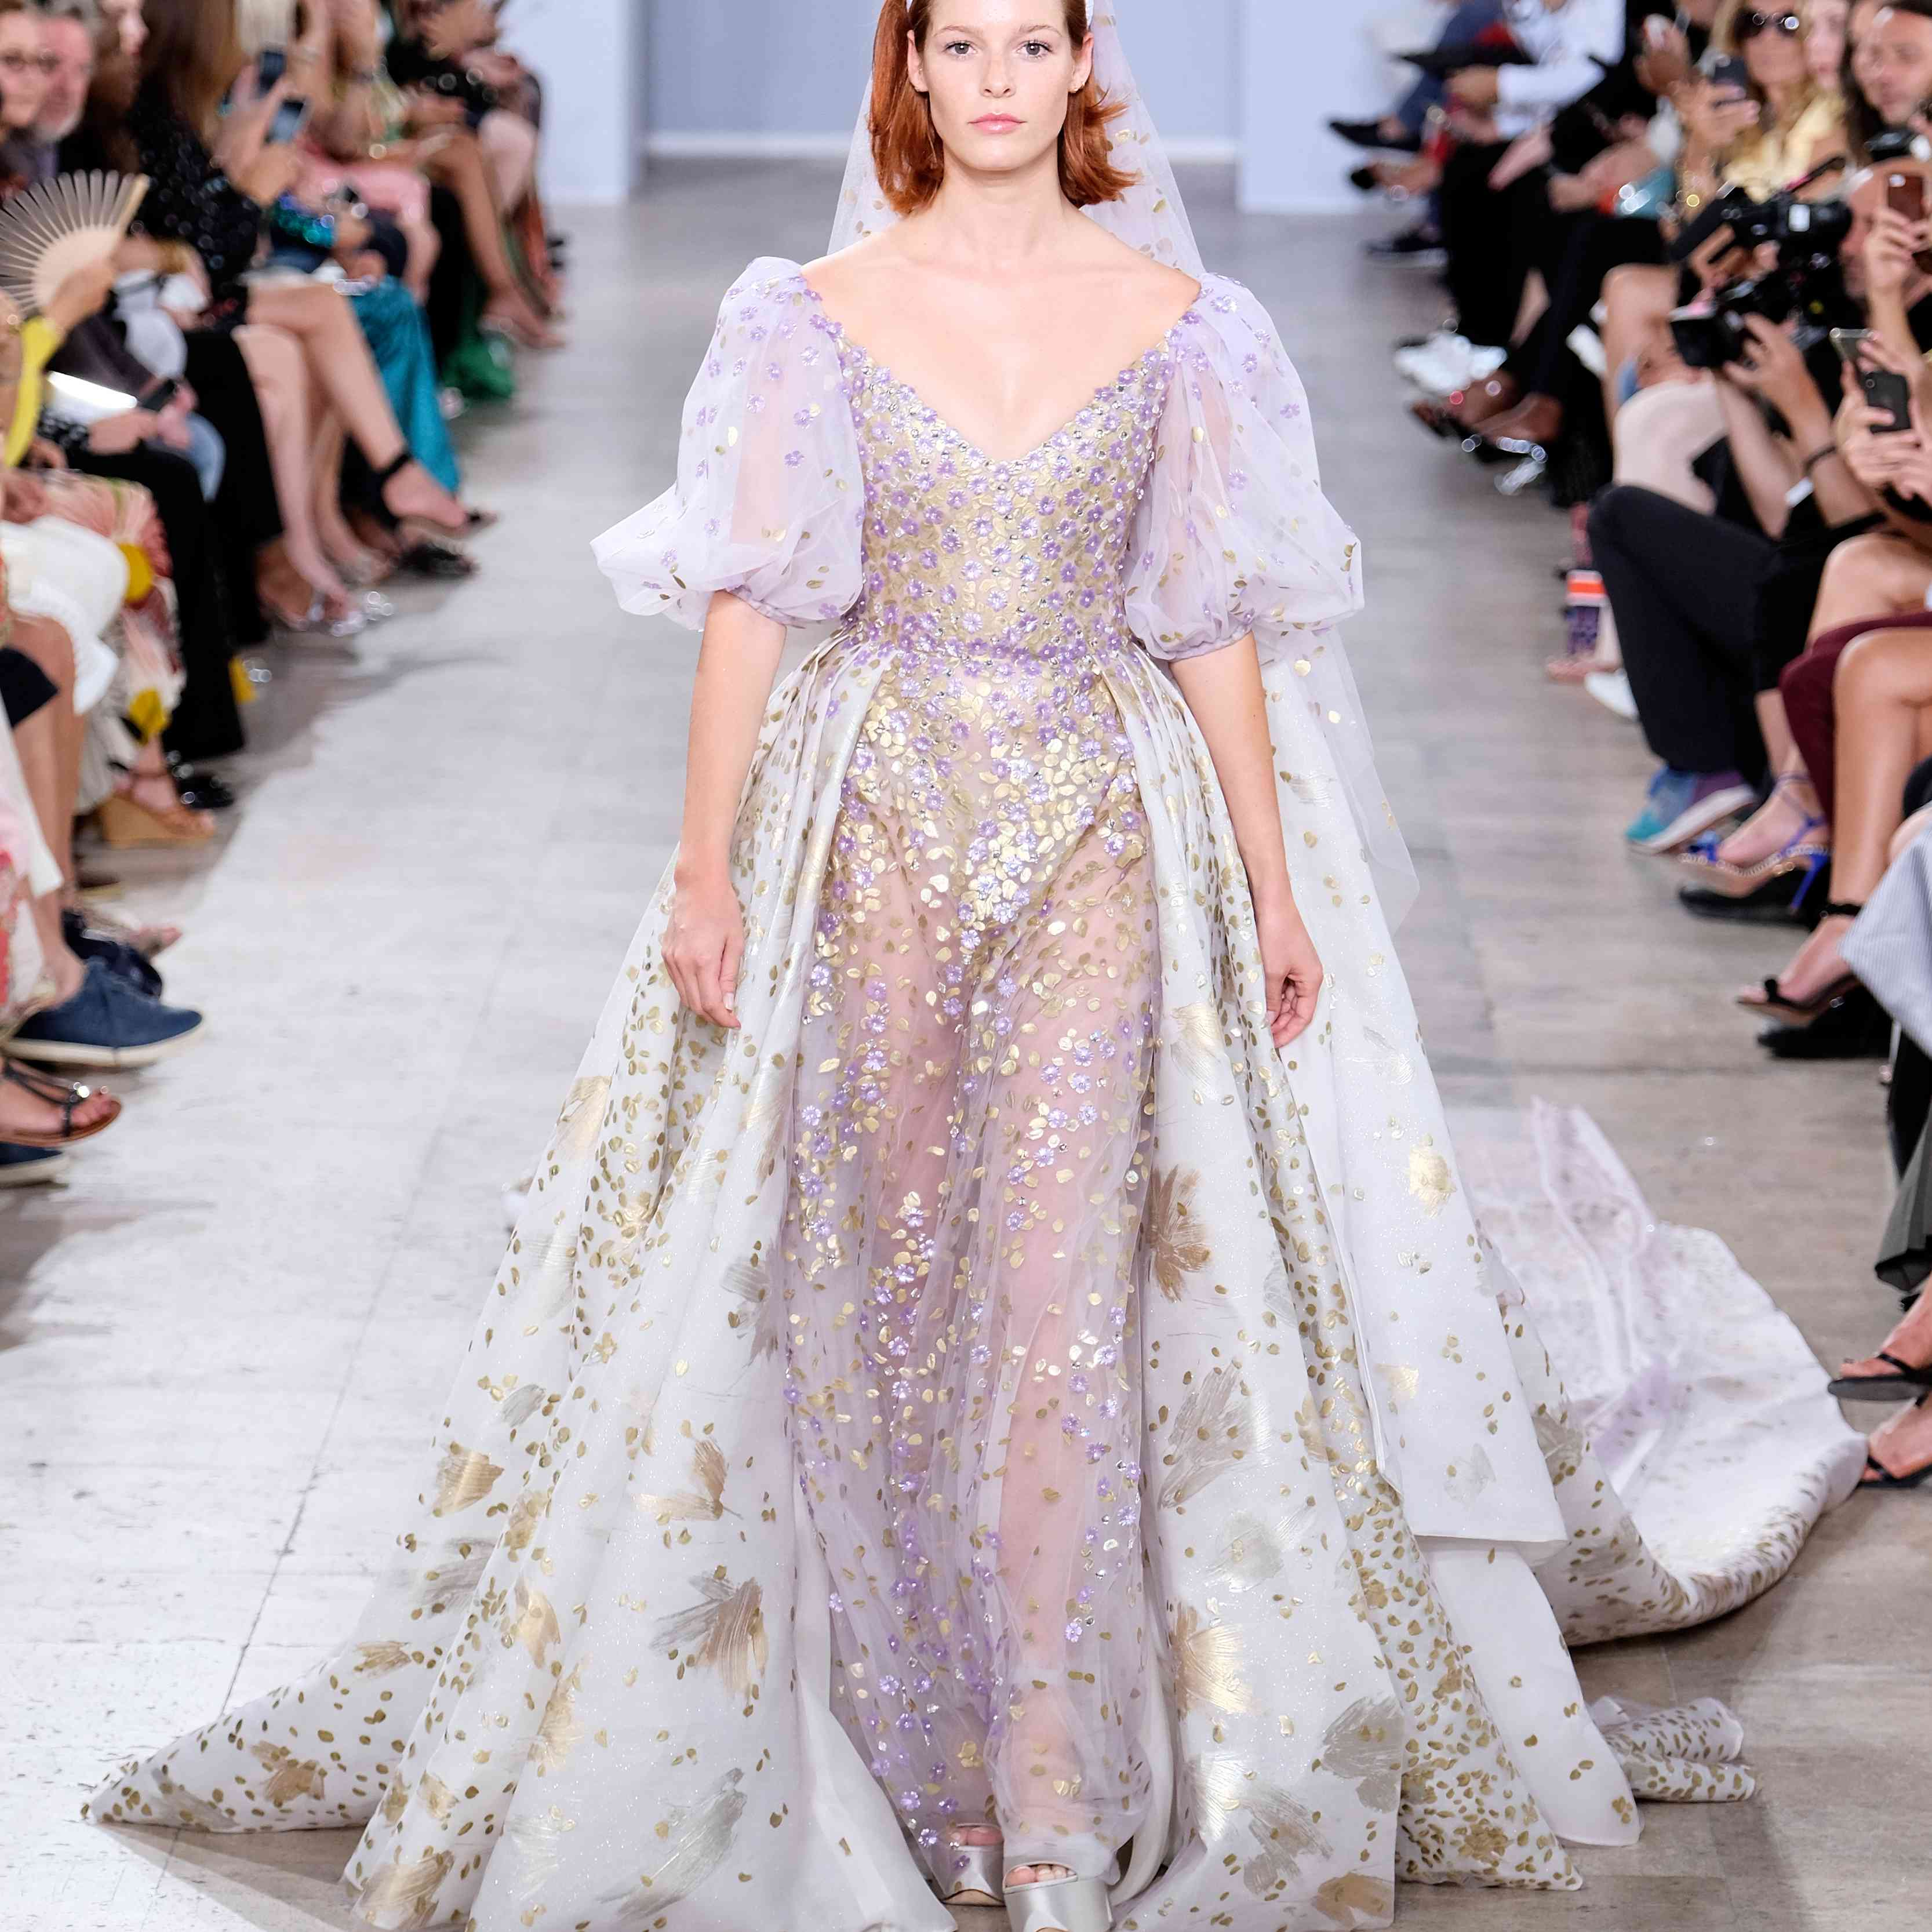 Model in gold-accented lilac and white gown with puffy sleeves